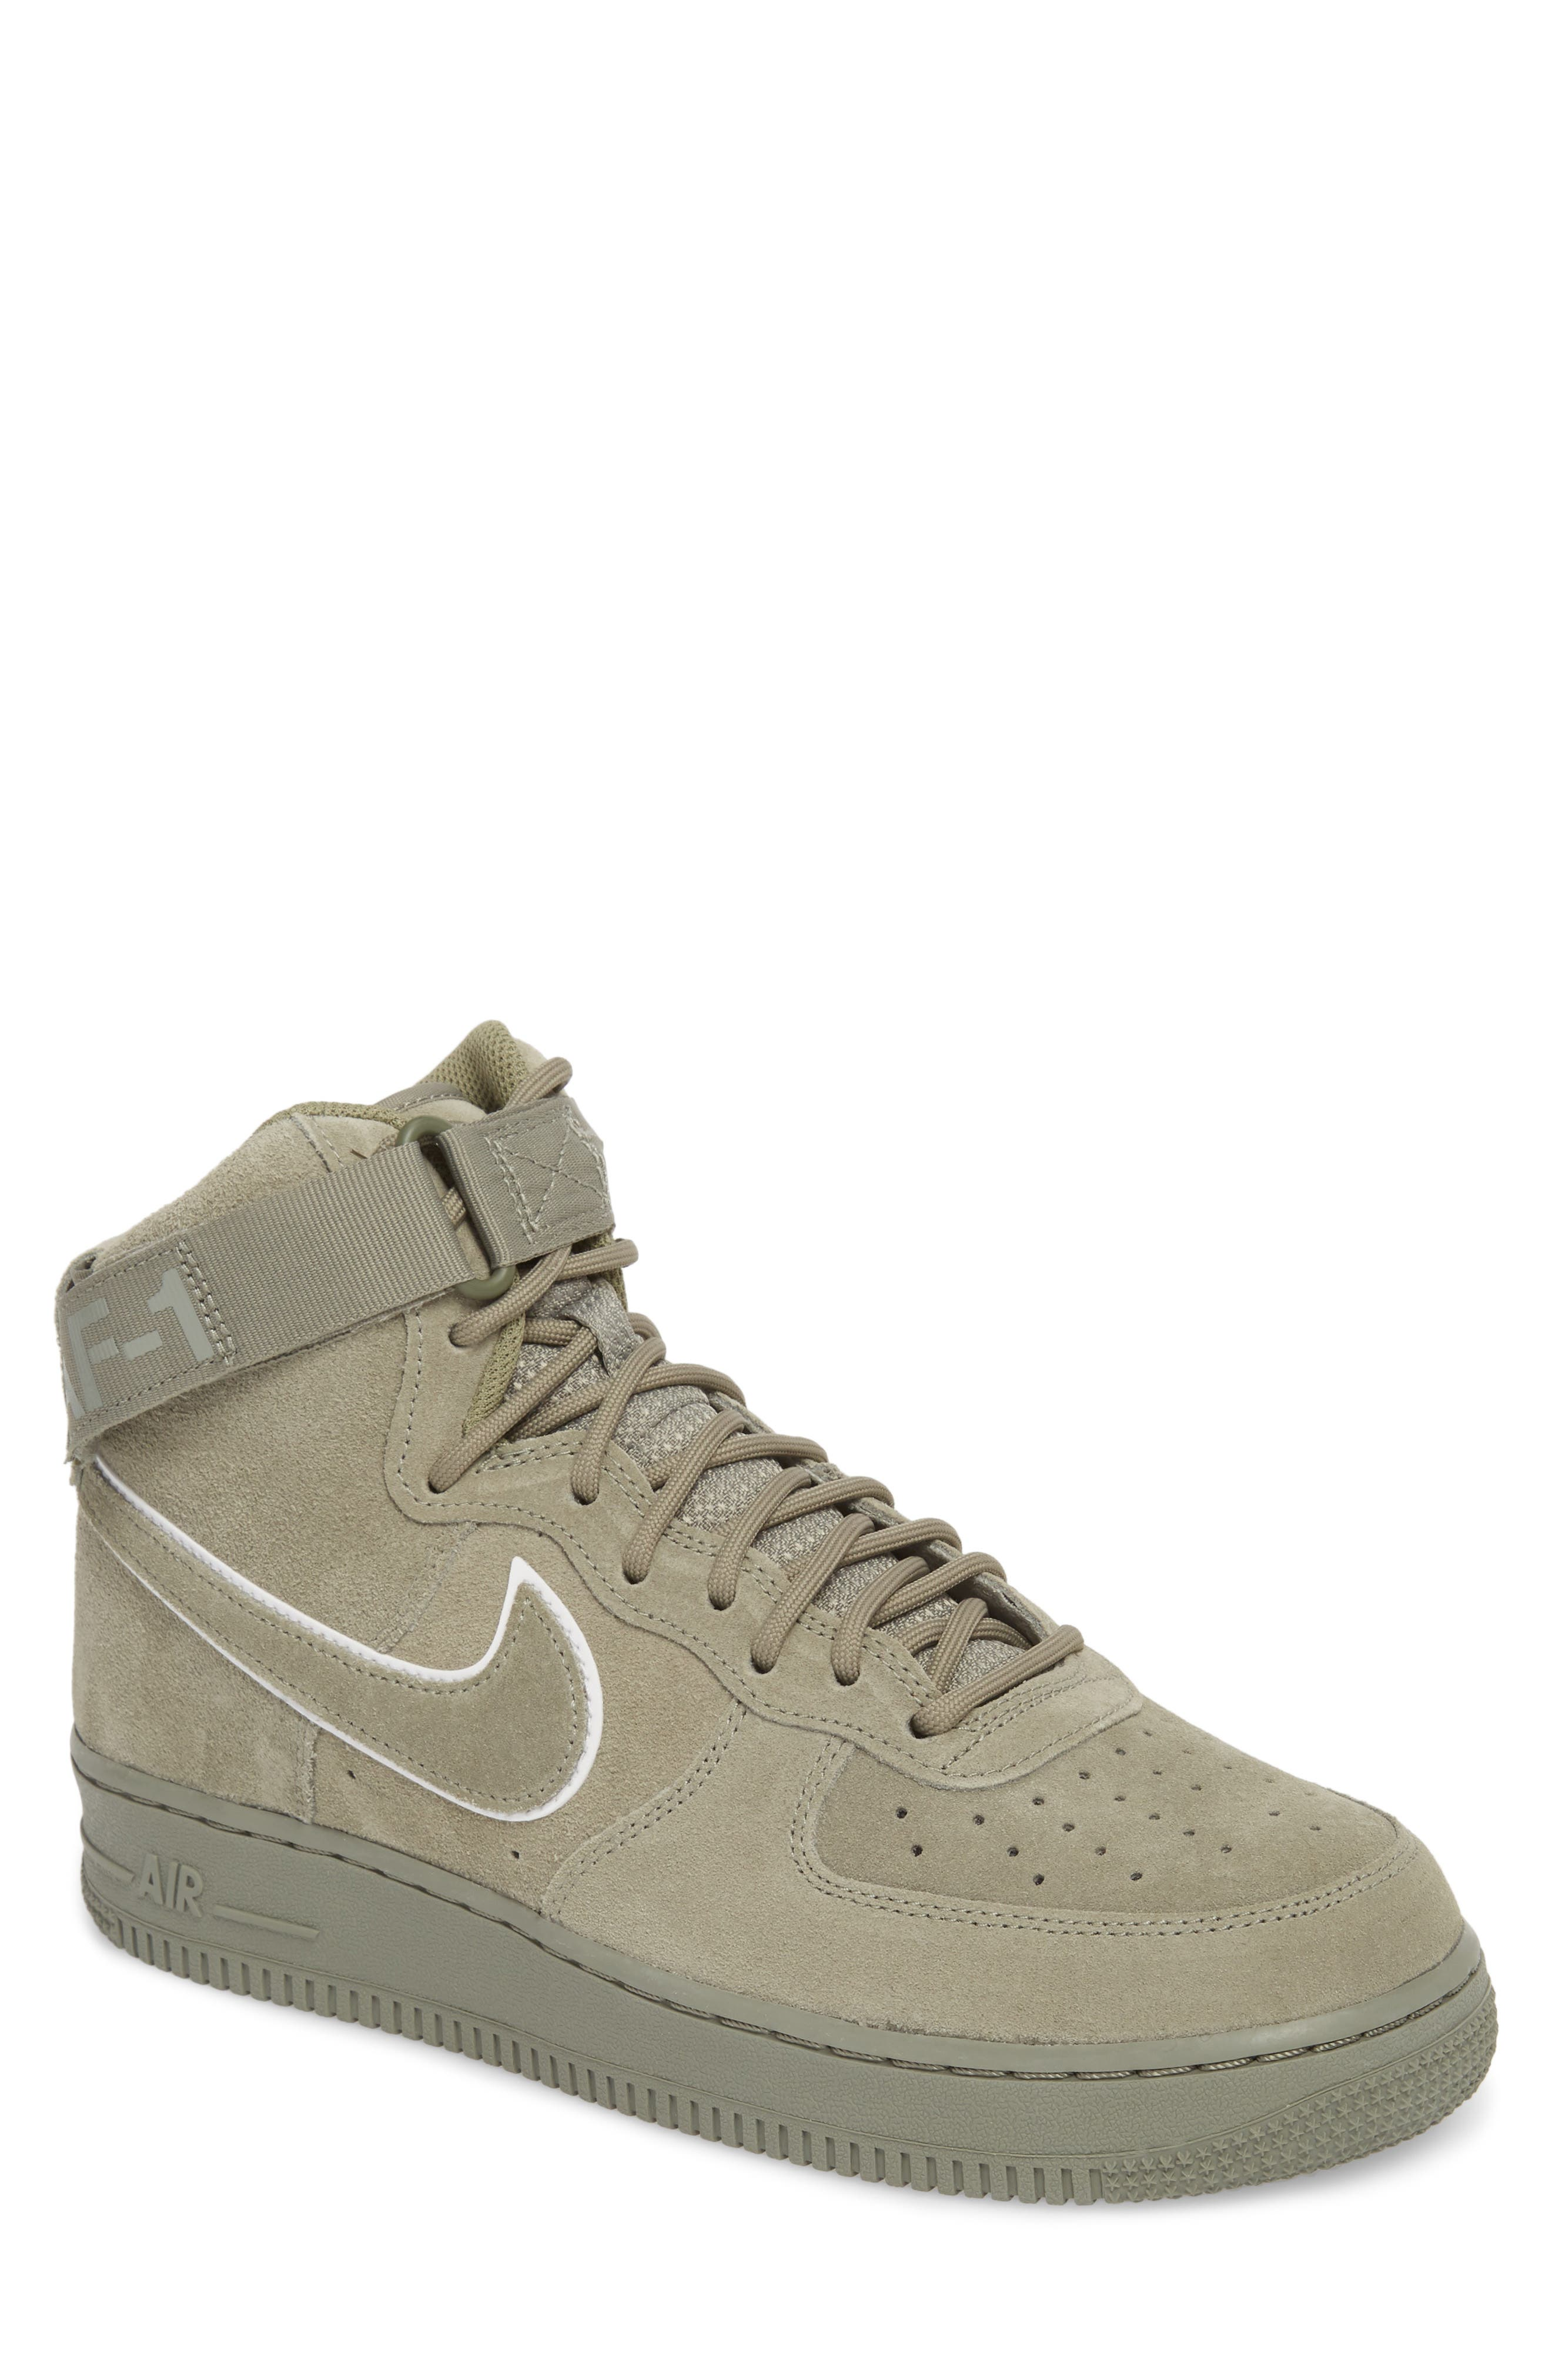 Air Force 1 High '07 LV8 Suede Sneaker,                             Main thumbnail 2, color,